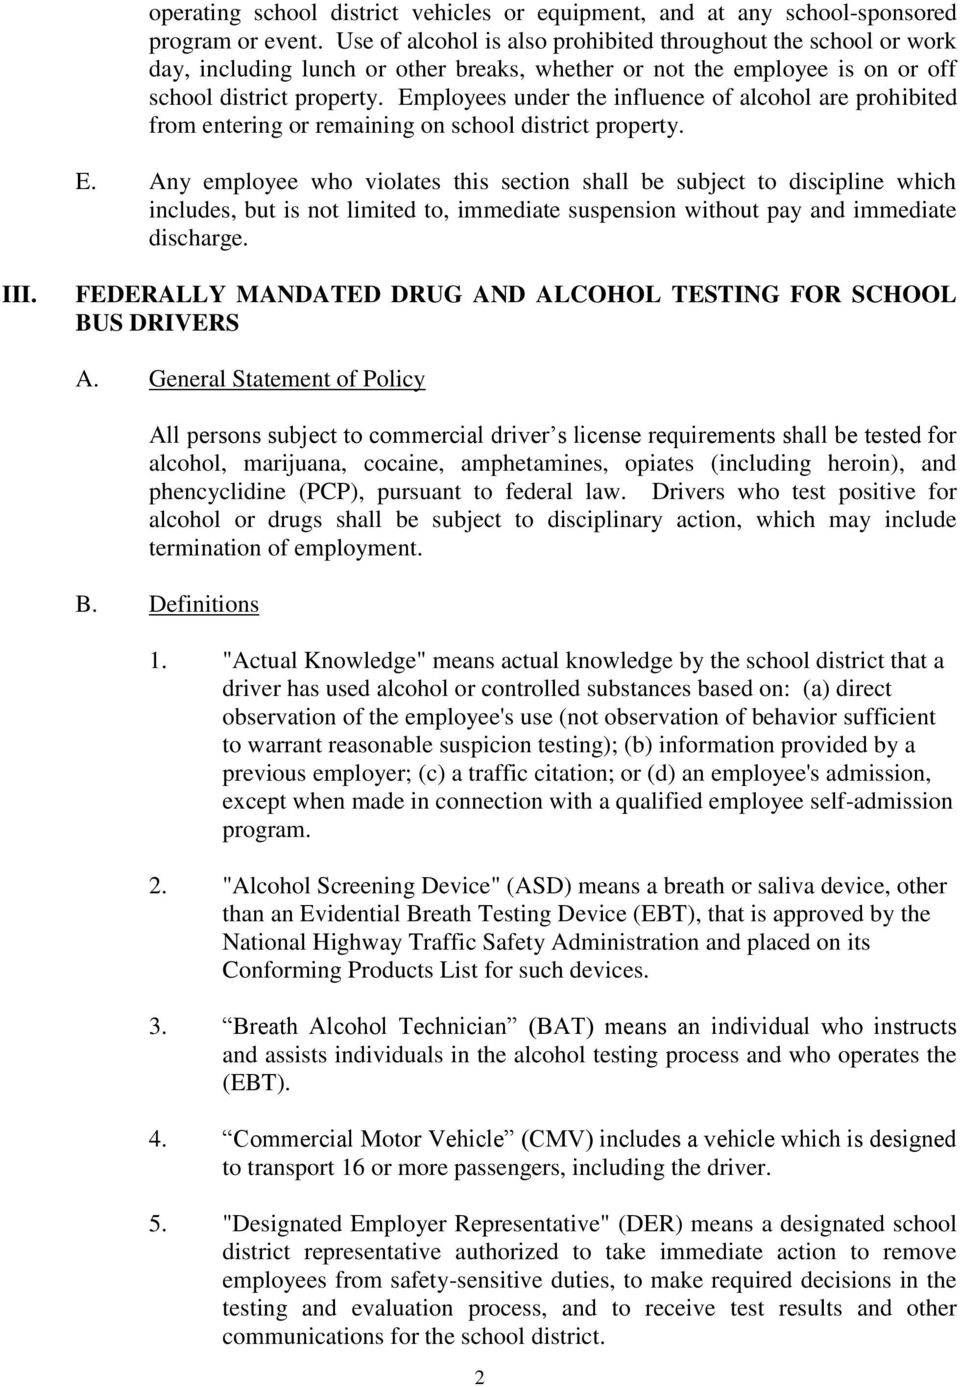 Employees under the influence of alcohol are prohibited from entering or remaining on school district property. E.